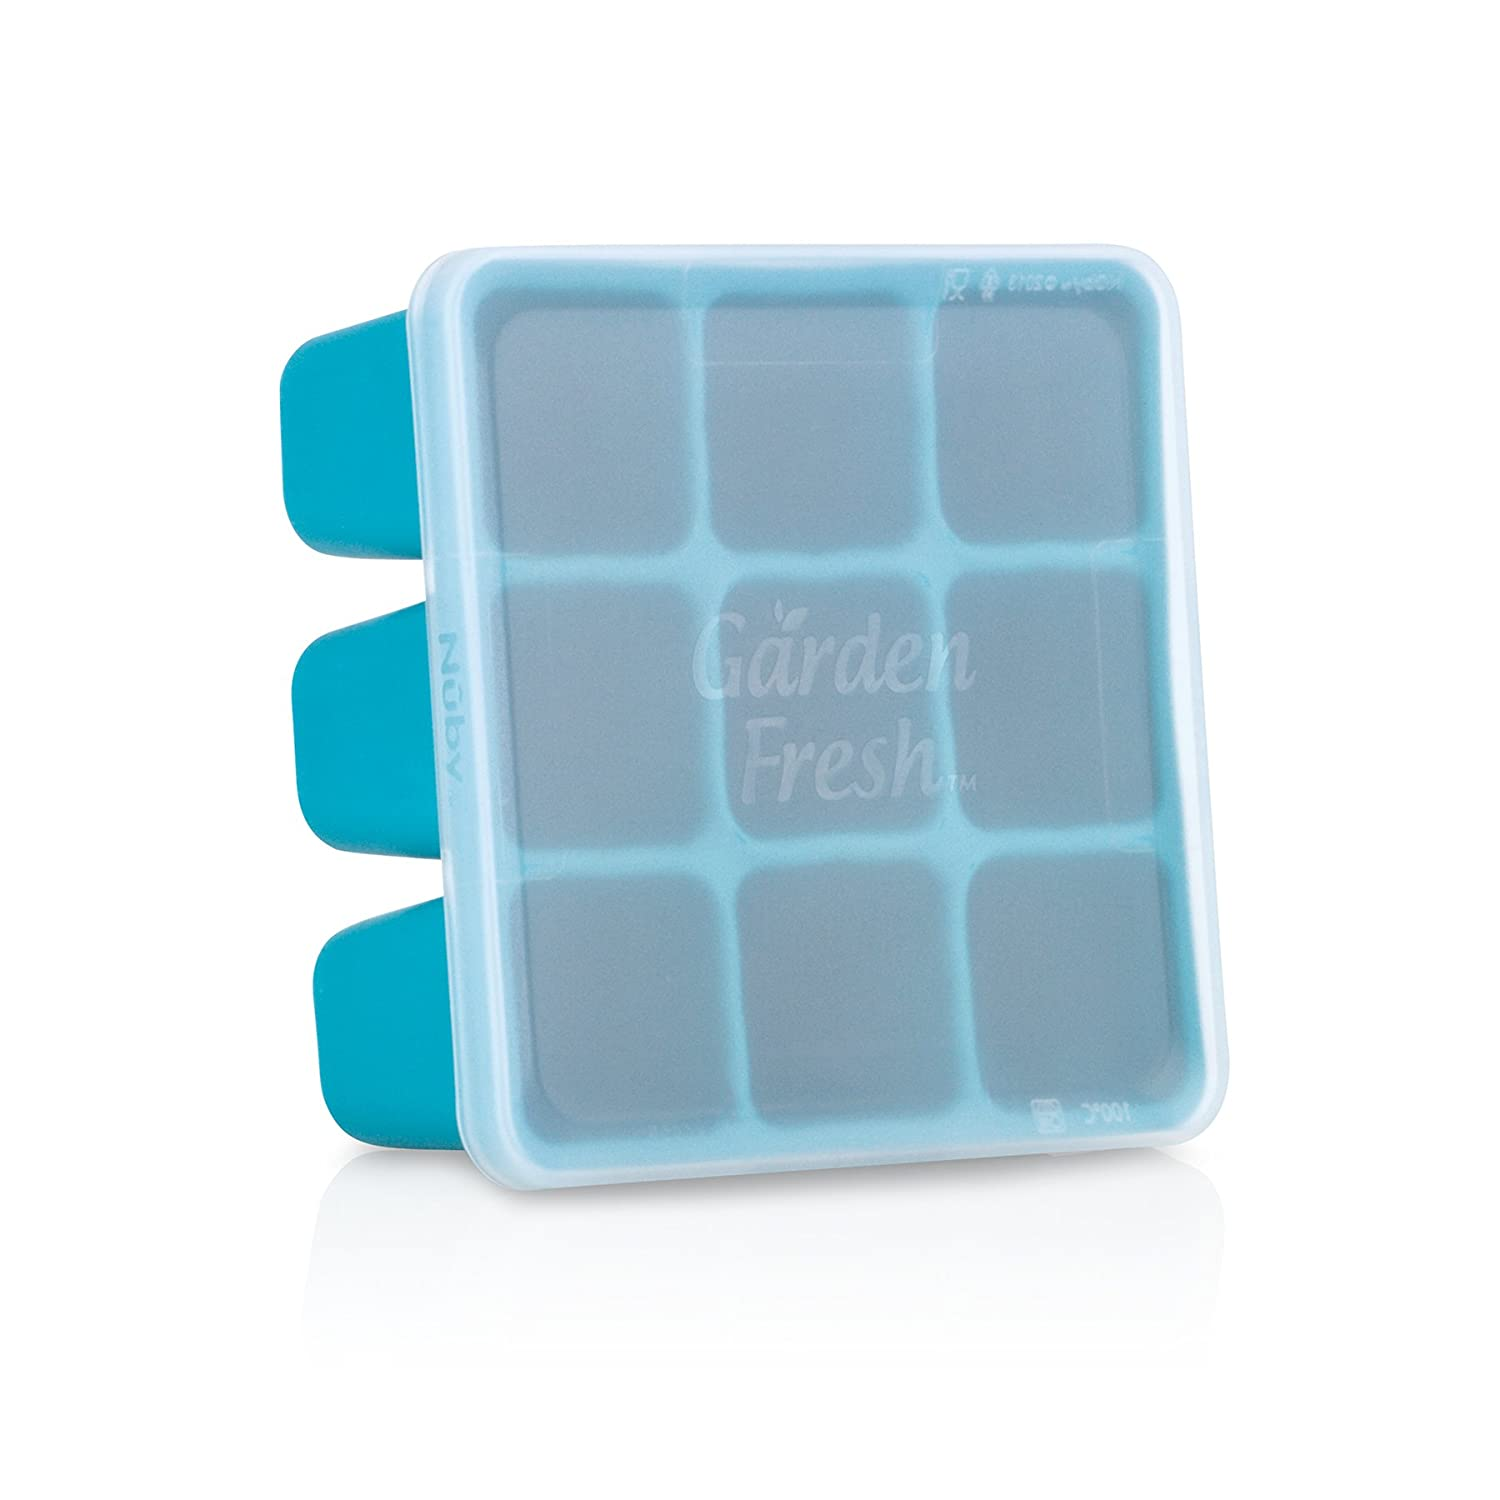 Nuby 534345BL Garden Fresh Freezer Tray, Blue